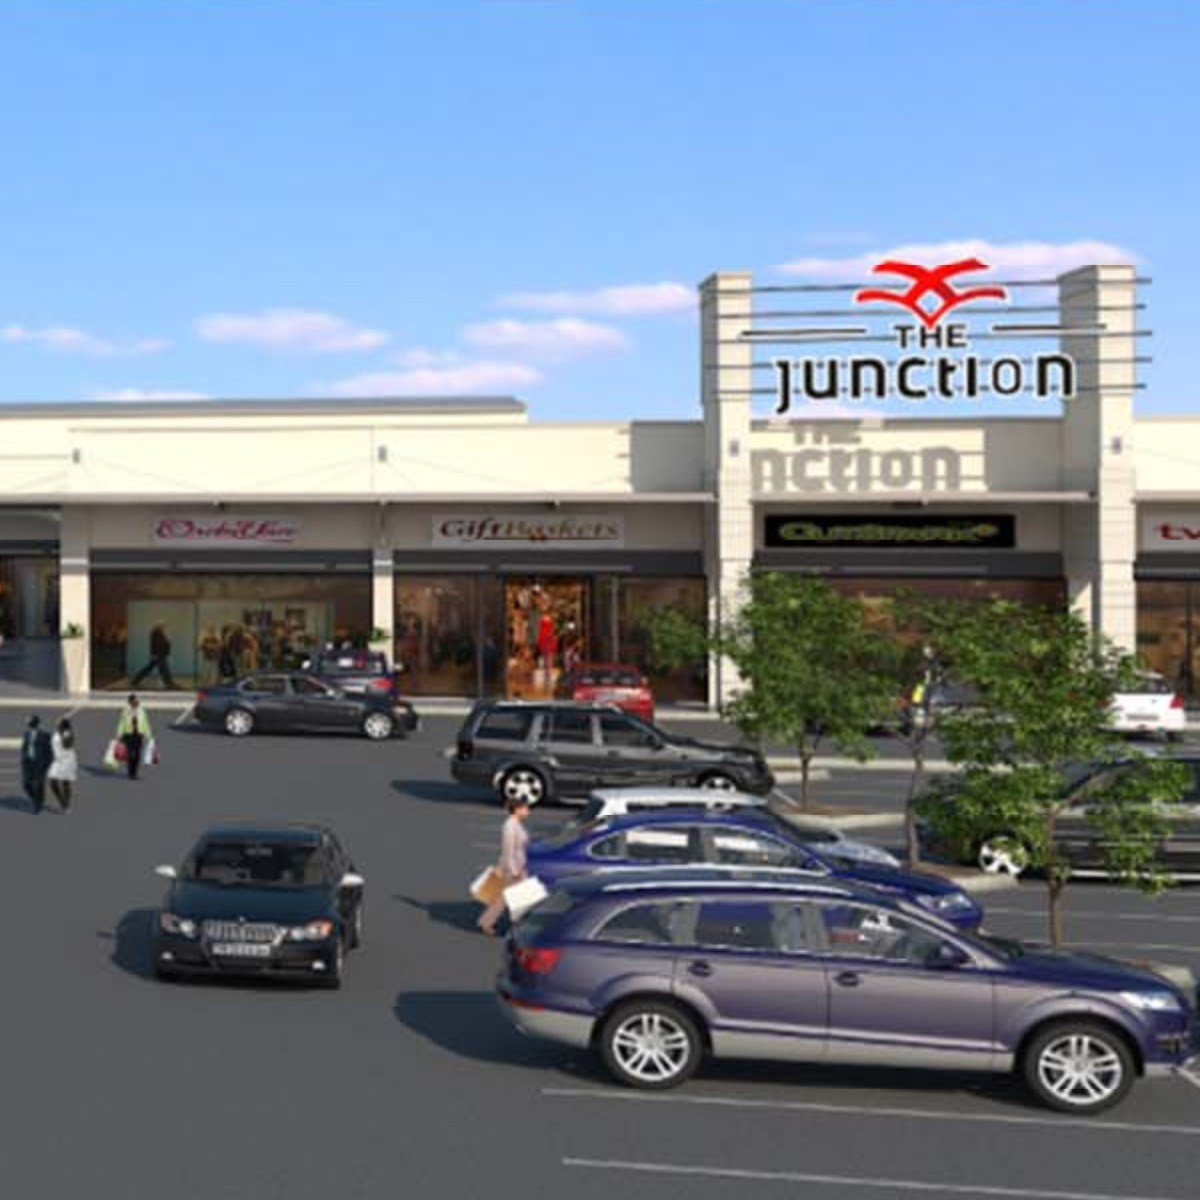 TheJunction_03